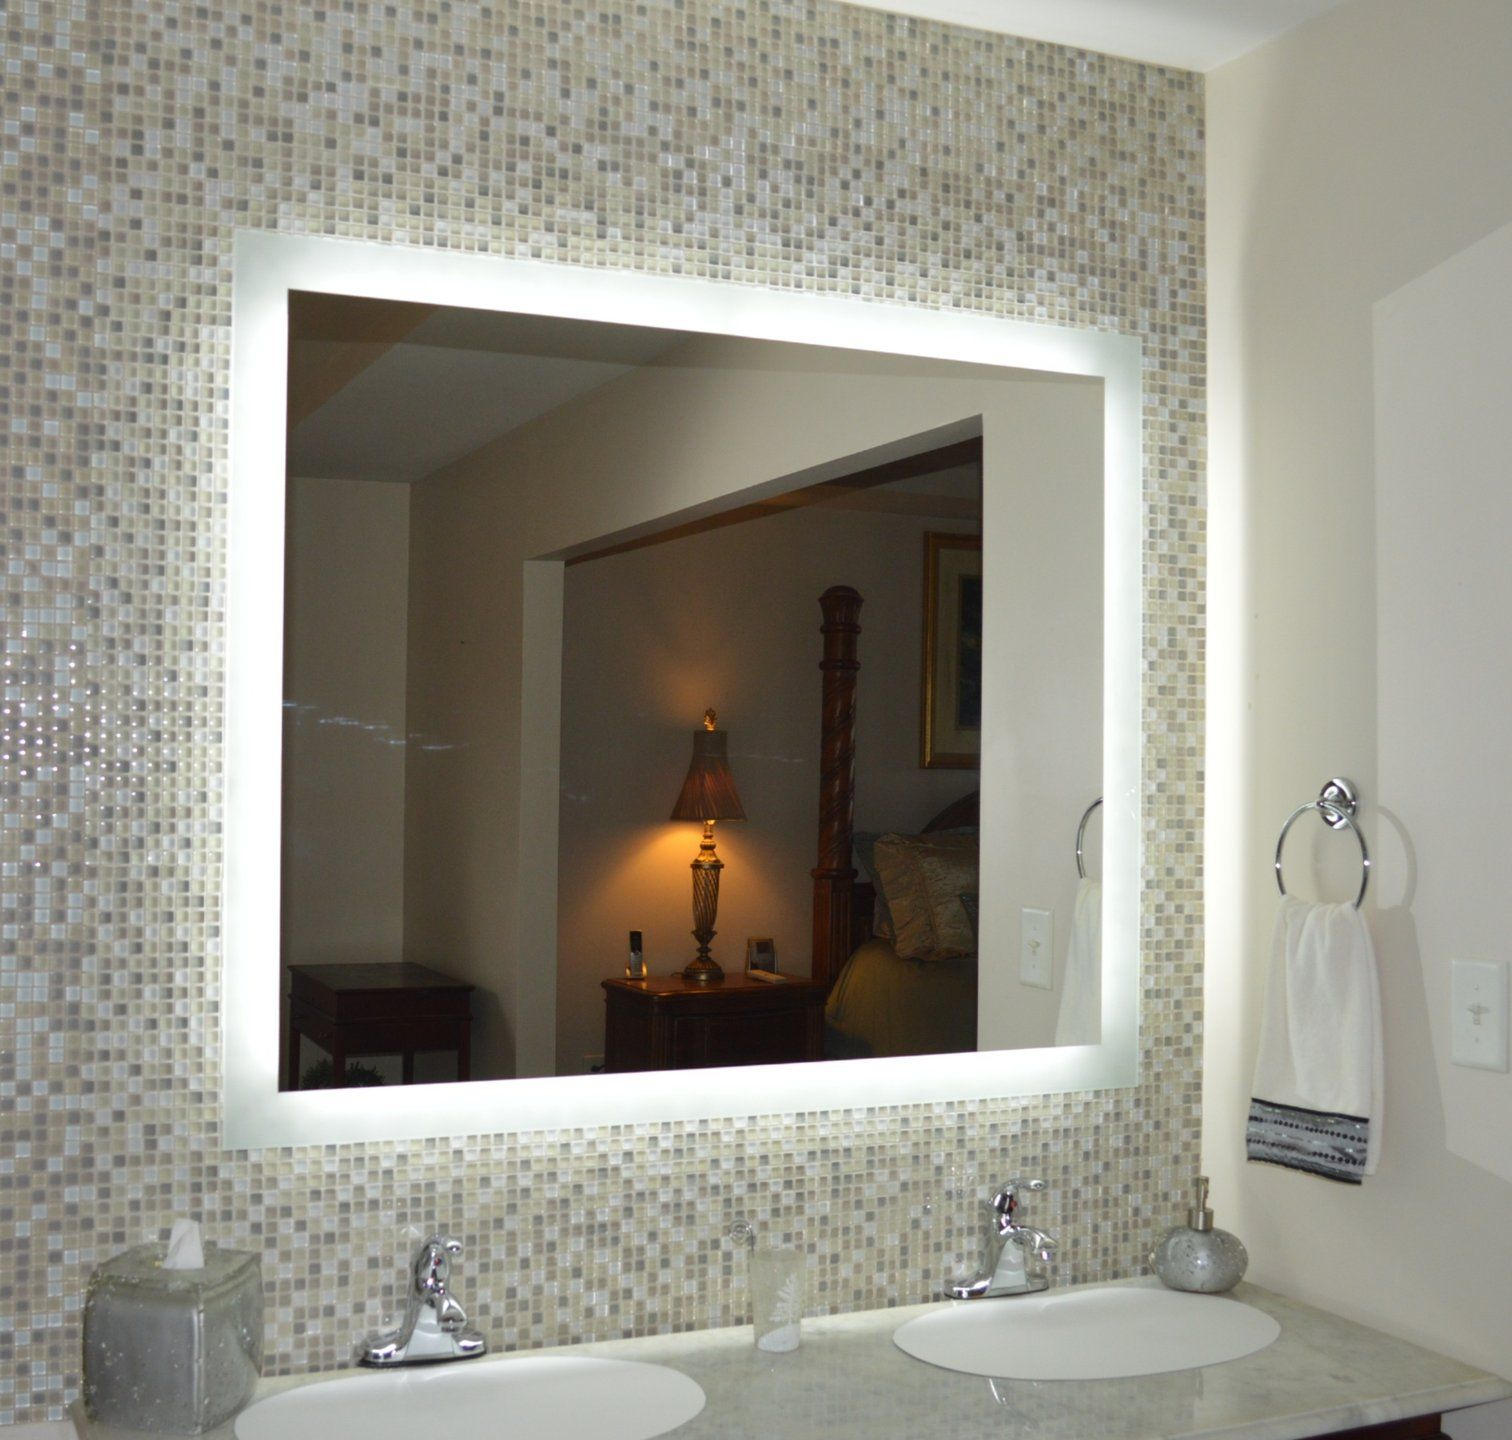 Beau Mirrors And Marble™ Brand Commercial Grade Wall Mounted Rectangular LED  Bathroom Vanity Makeup Mirror, 48 Inches Wide, 40 Inches Tall.